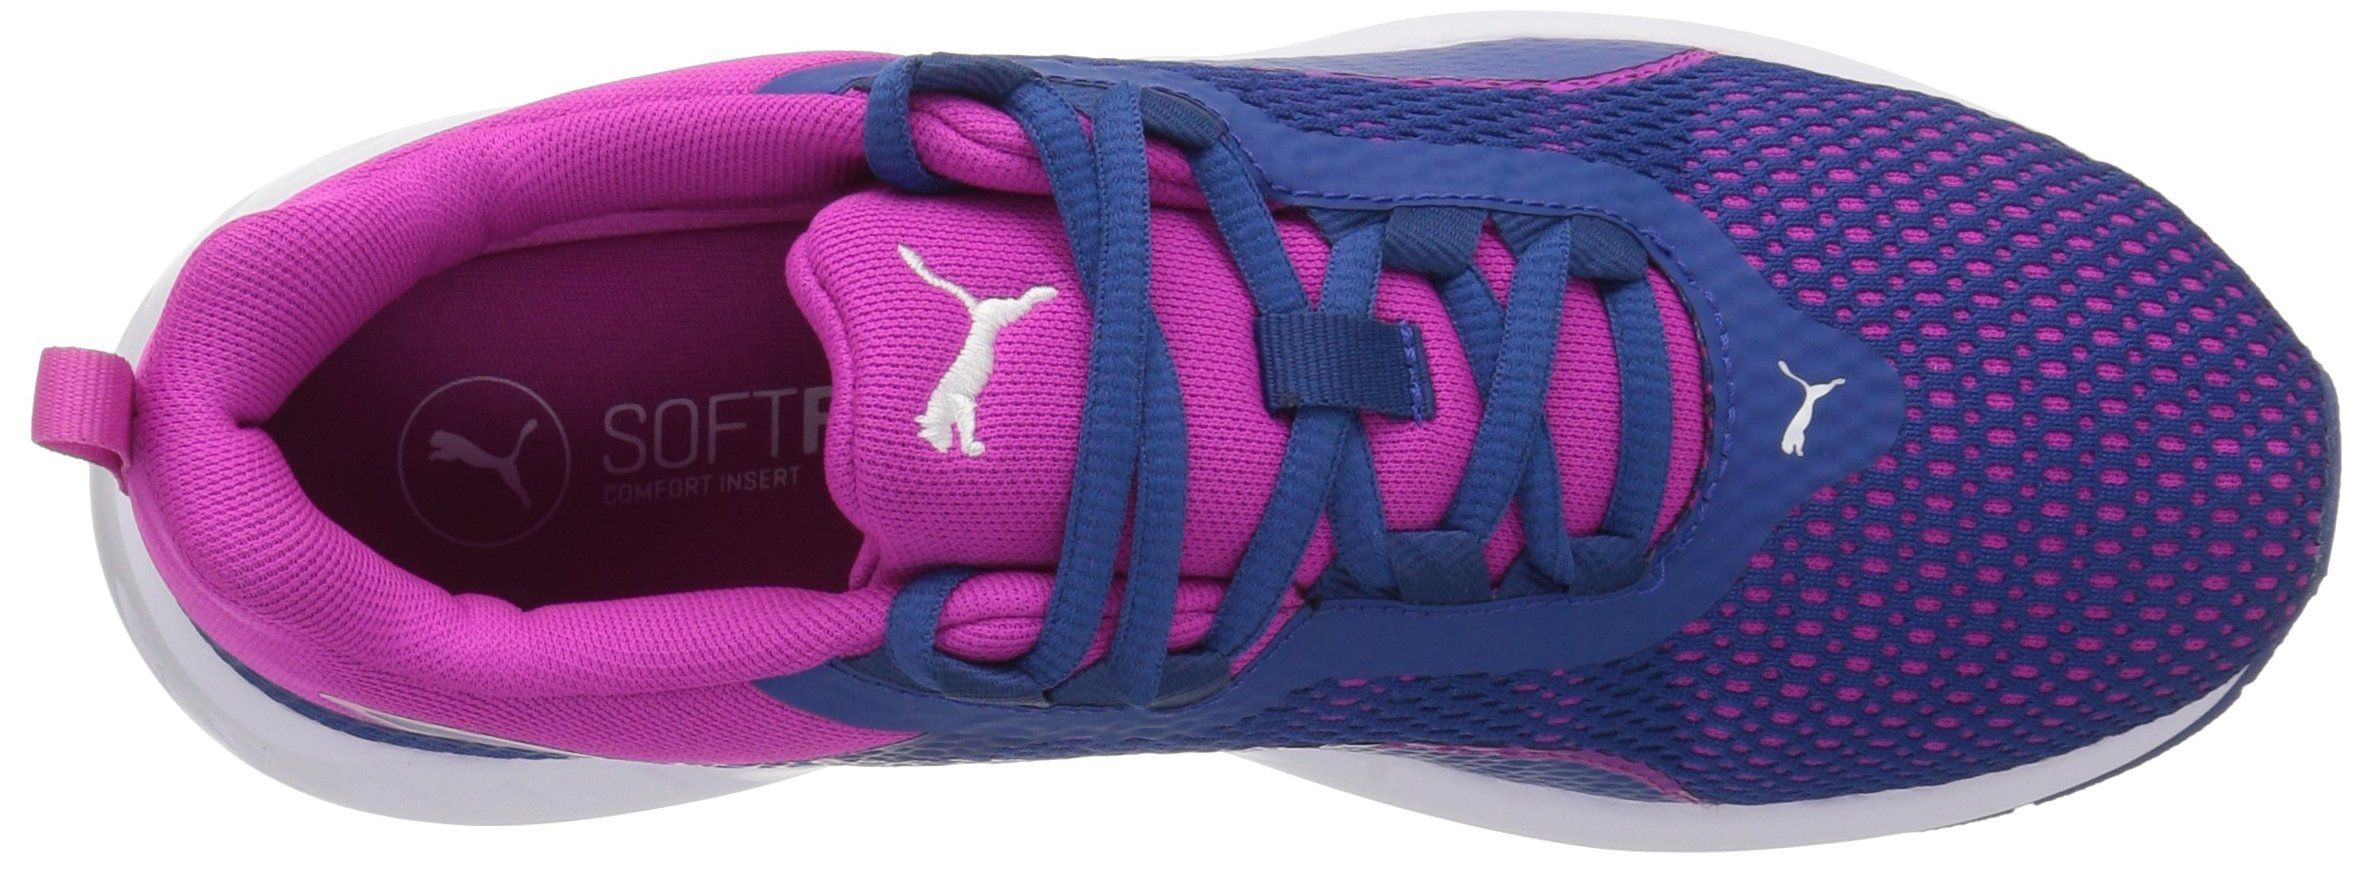 01a0652d8c6d PUMA Womens Flare 2 Wns CrossTrainer Shoe Ultra MagentaTrue Blue 8.5 M US     To